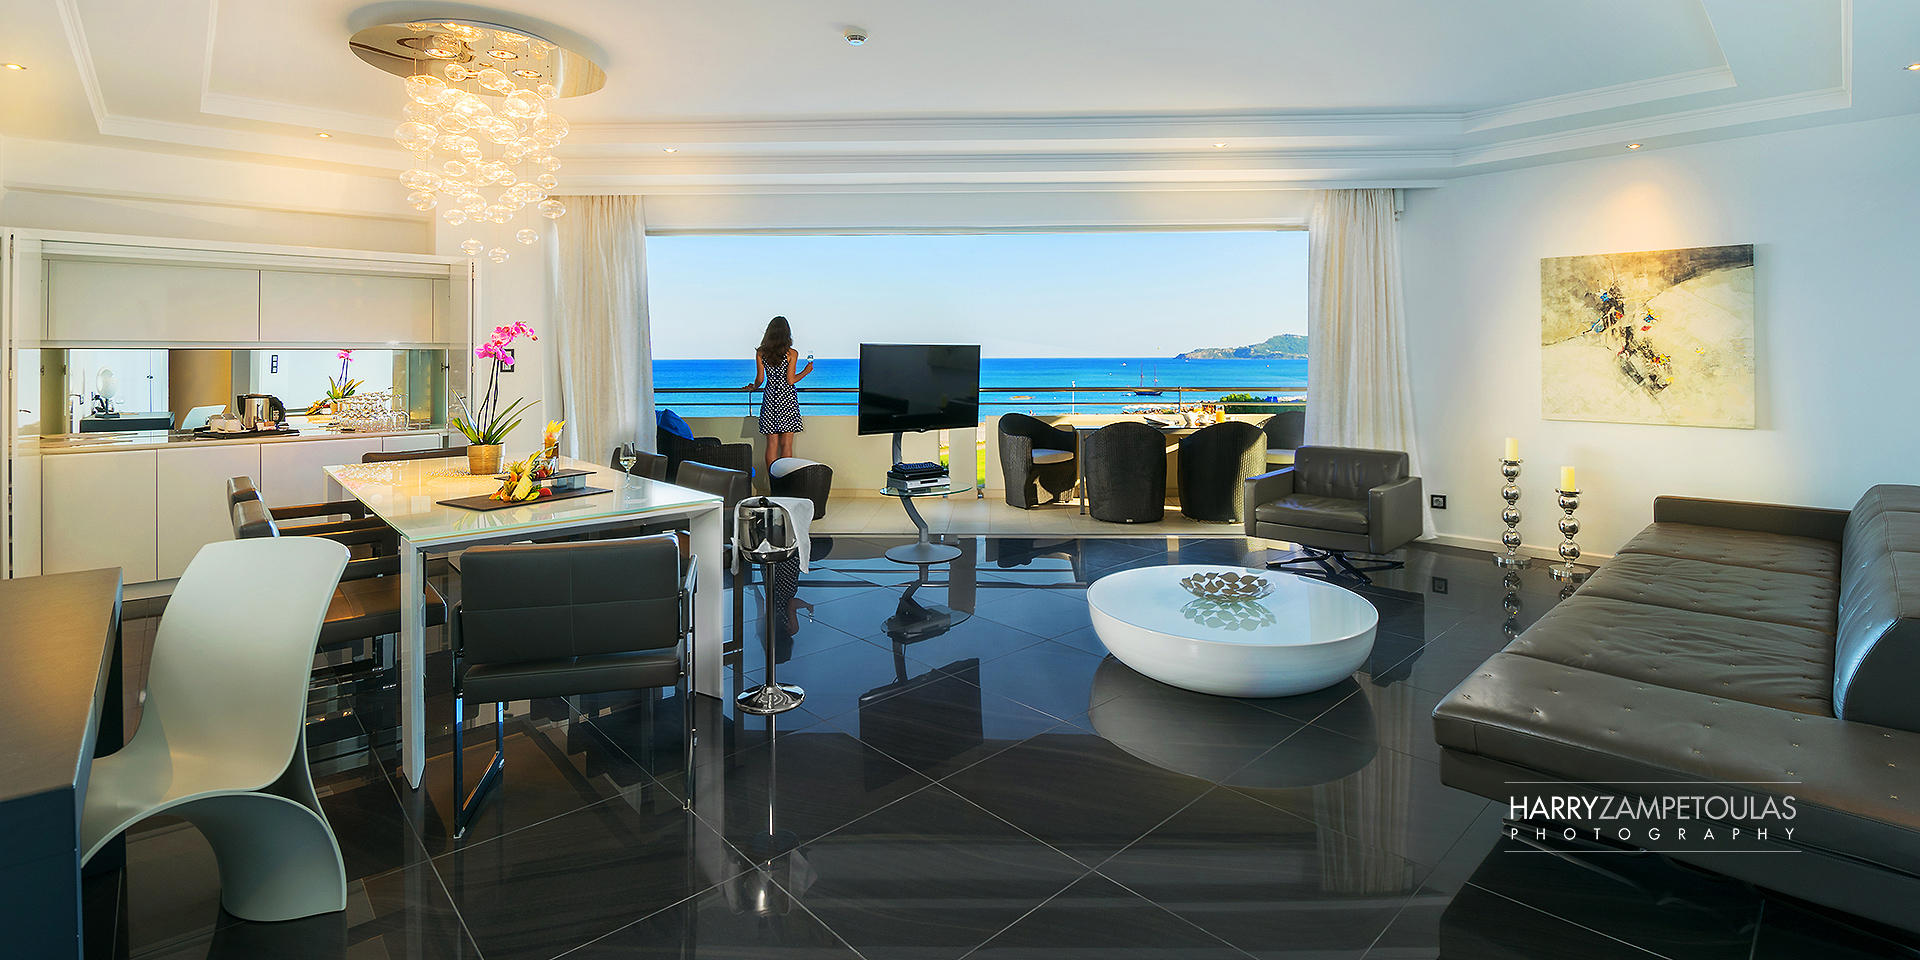 Presidential-livingroom Hotel Photographer Professional photography Architecture Interior Design Photography Harry Zampetoulas Rhodes Greece